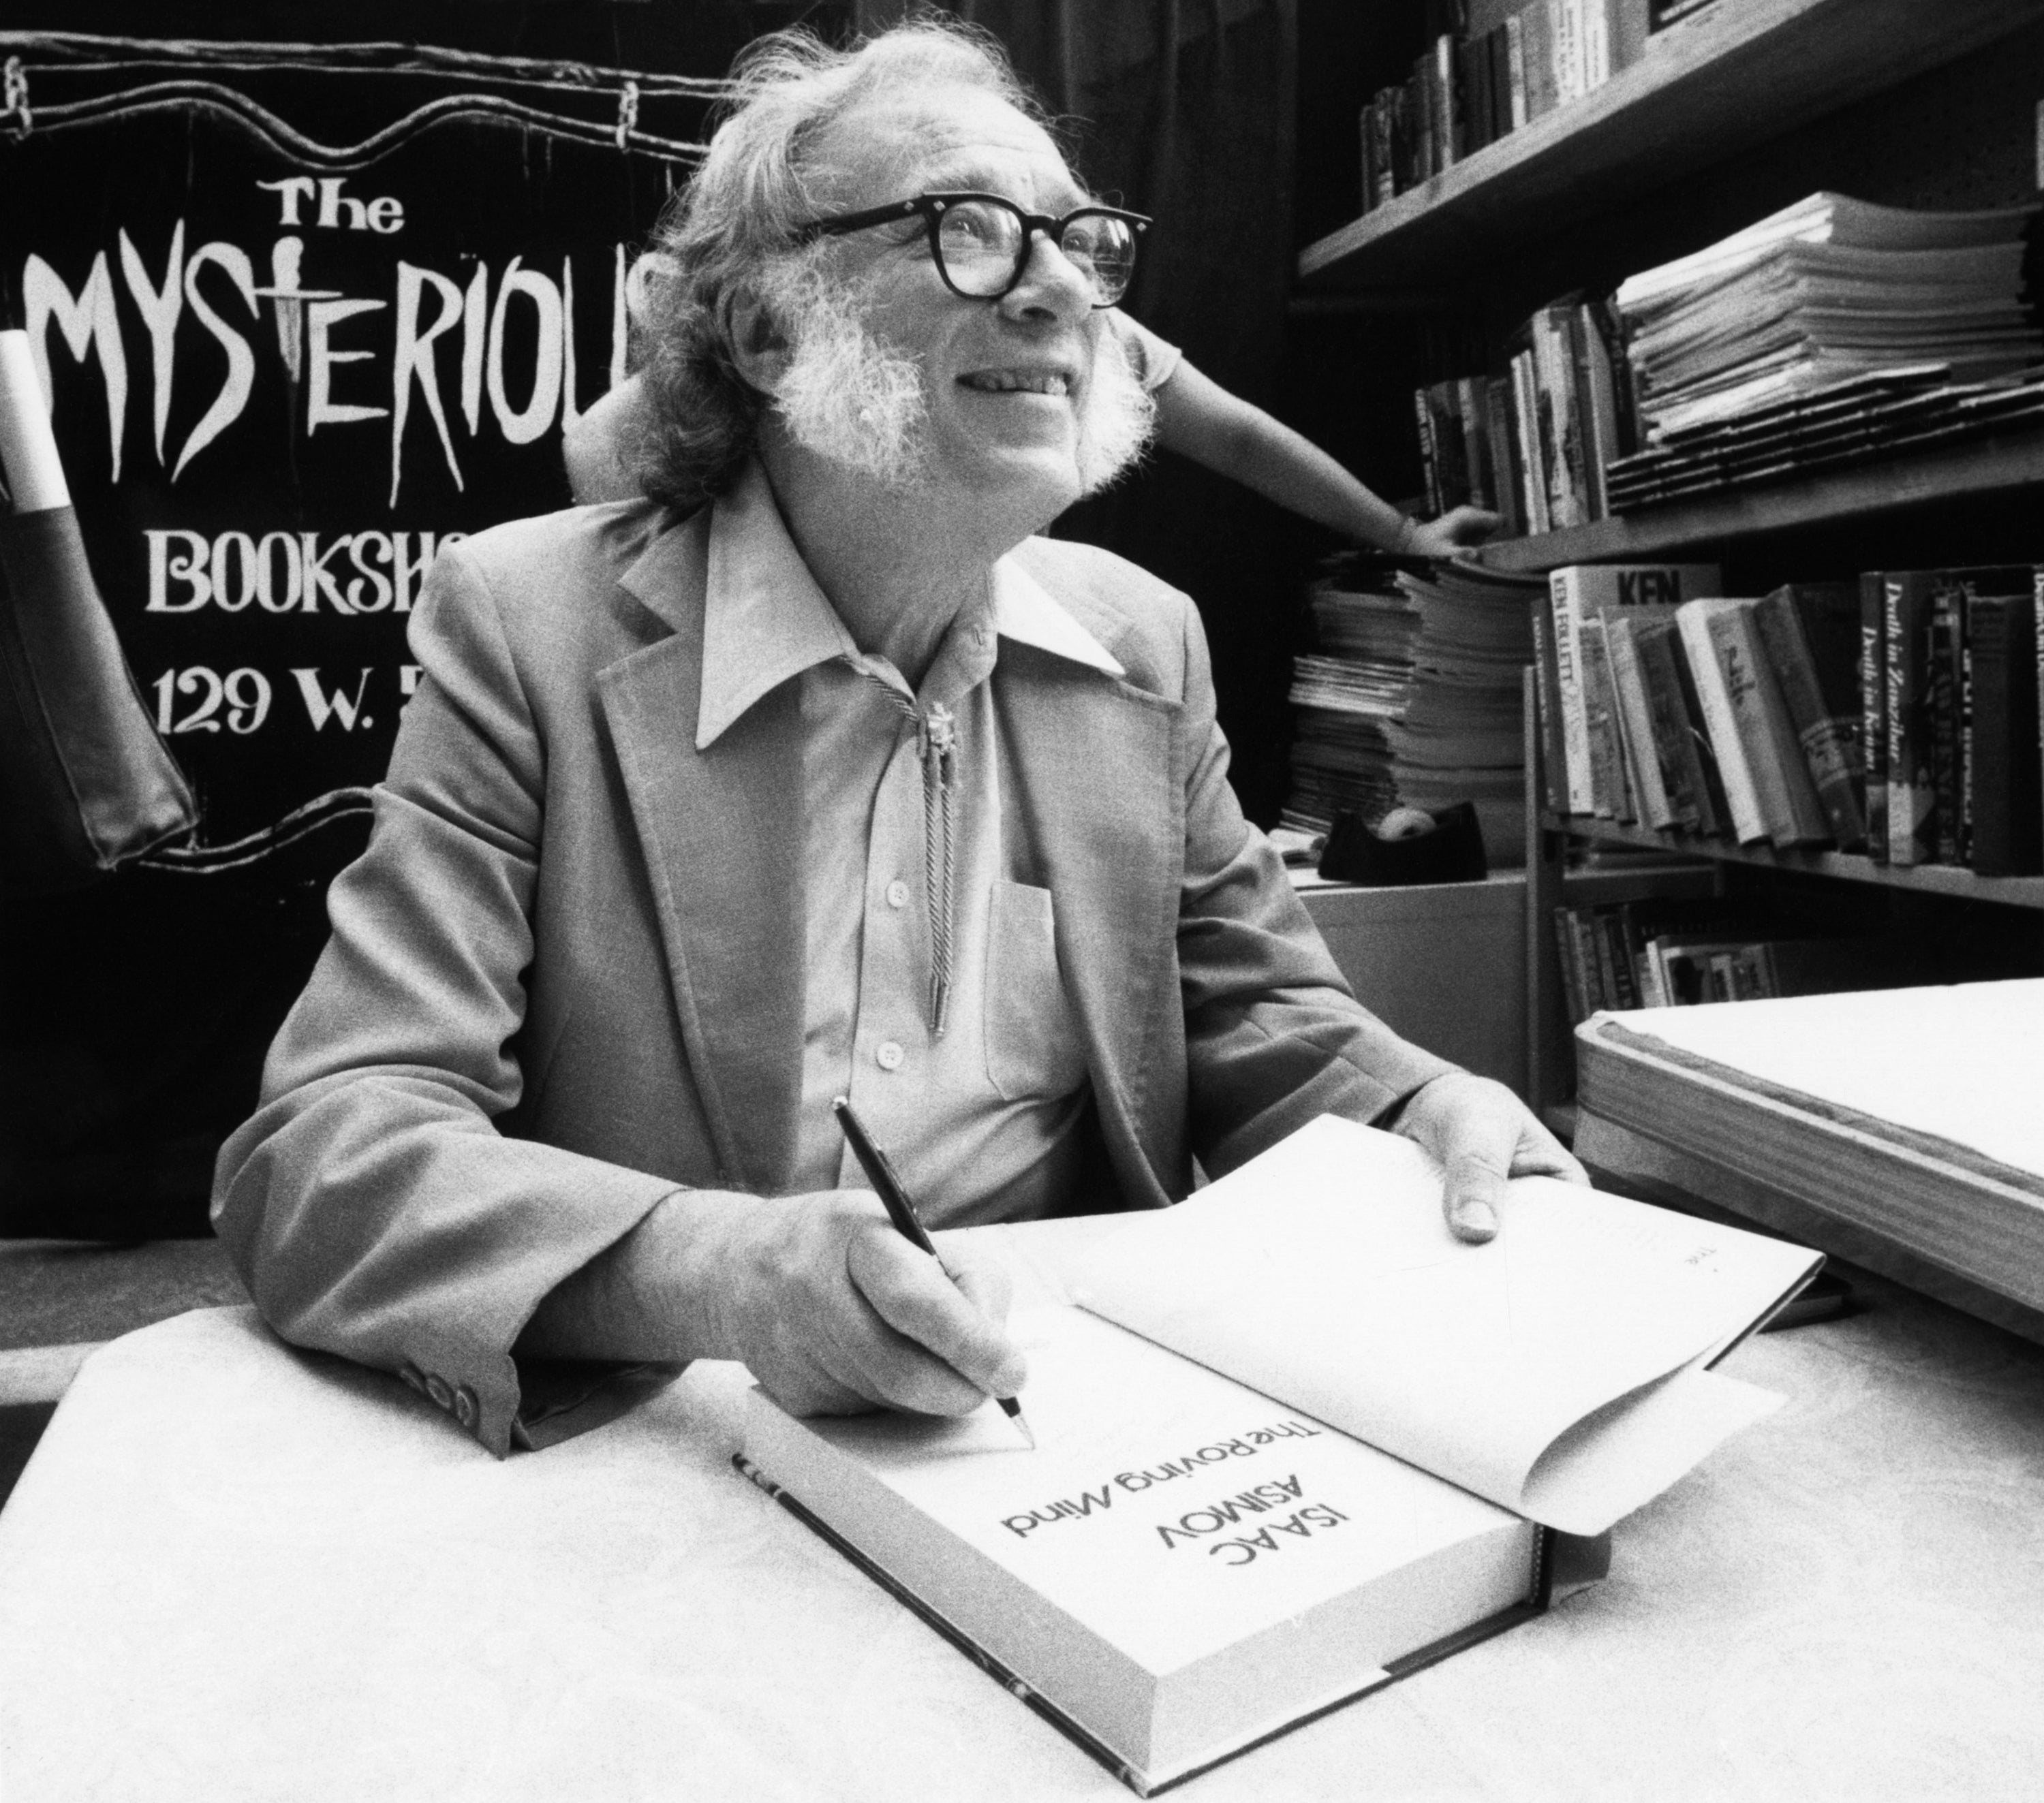 asimov essay Related documents: essays: science fiction and isaac asimov essay about science fiction novels 12060 definition essay july 16, 2012 science fiction novels science fiction novels are literacy genre which has antecedents back to mythology.